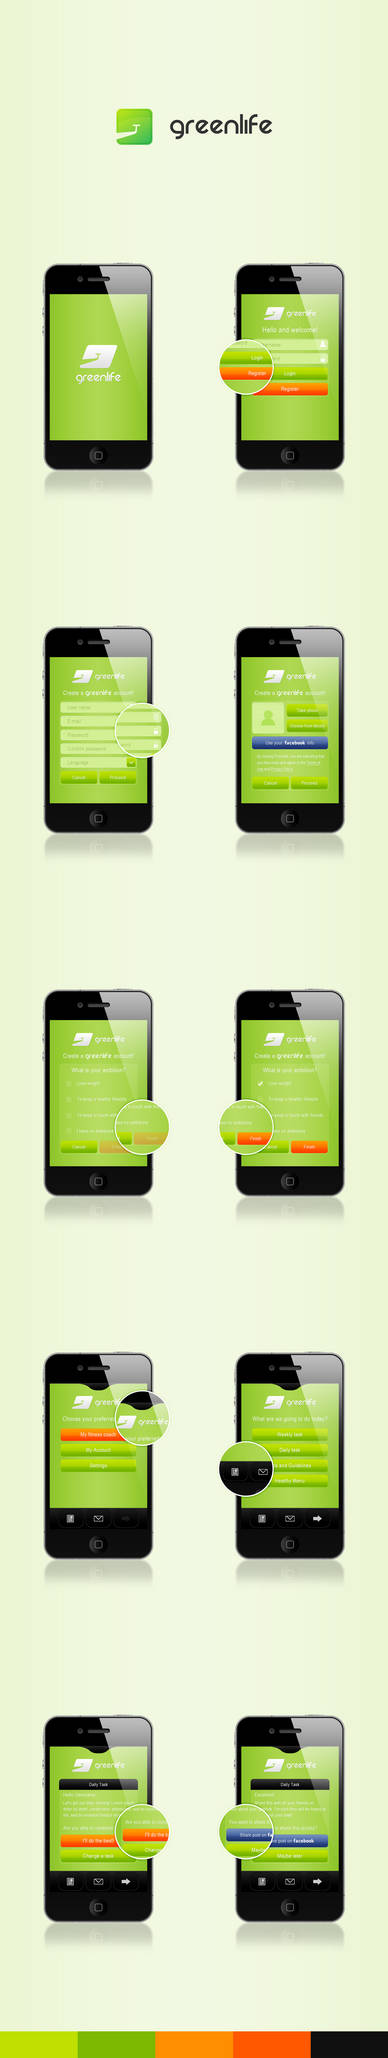 GreenLife Application design by RaymondGD